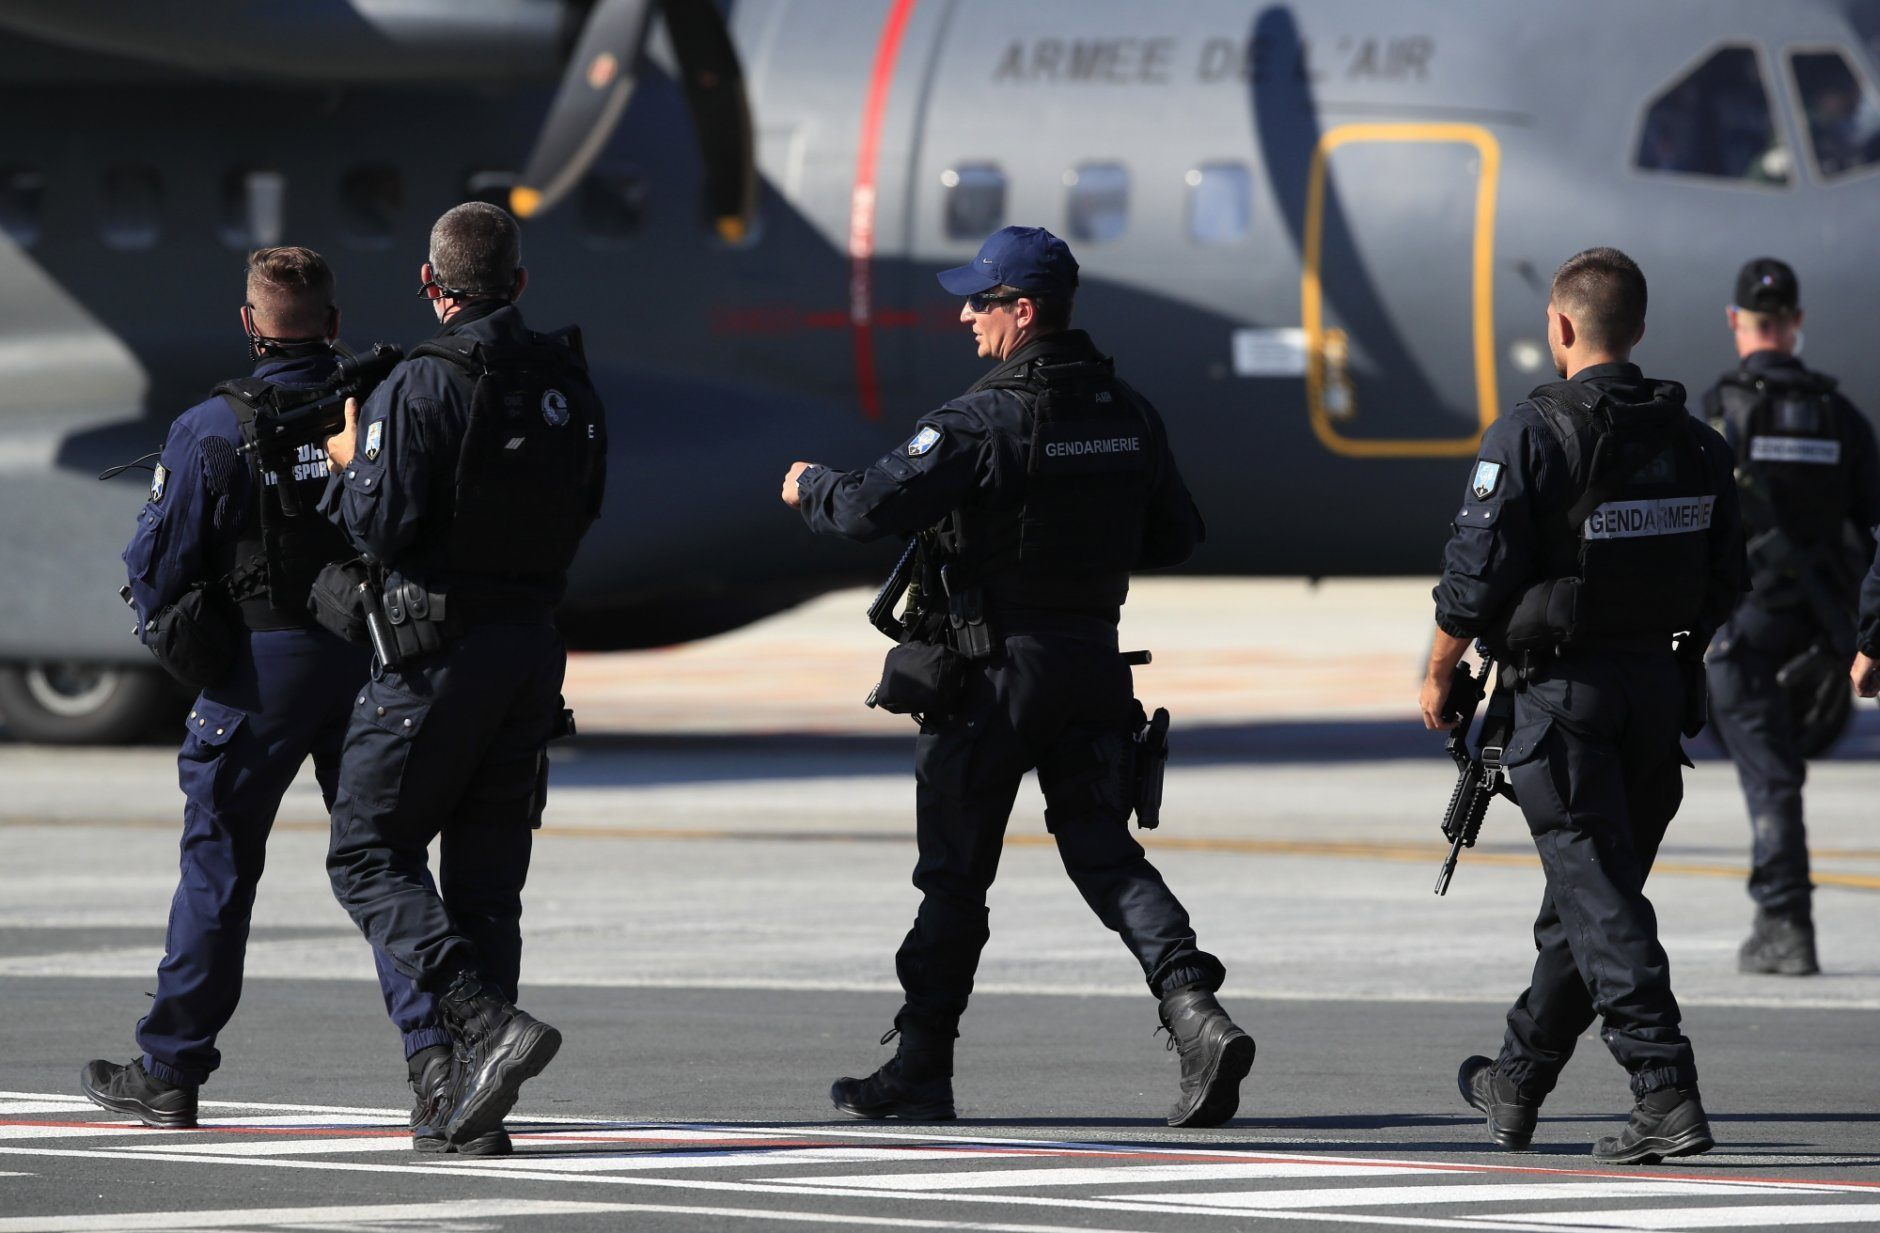 Armed police officers await the arrival of Japanese Prime Minister Shinzo Abe at the airport in Biarritz, France, for the first day of the G-7 summit, Saturday, Aug. 24, 2019. U.S. President Donald Trump and the six other leaders of the Group of Seven nations will begin meeting Saturday for three days in the southwestern French resort town of Biarritz. France holds the 2019 presidency of the G-7, which also includes Britain, Canada, Germany, Italy and Japan. (AP Photo/Peter Dejong)